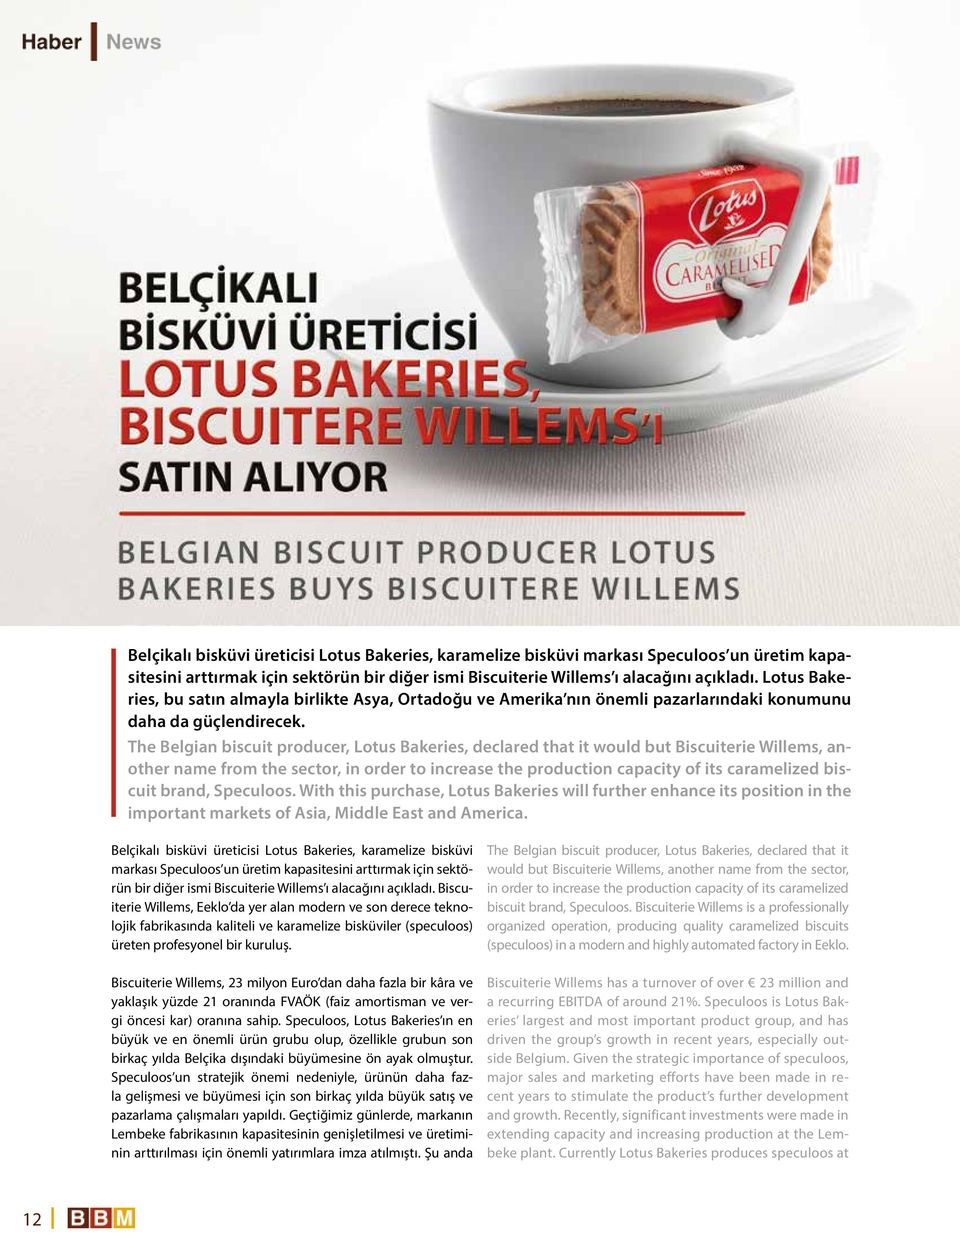 The Belgian biscuit producer, Lotus Bakeries, declared that it would but Biscuiterie Willems, another name from the sector, in order to increase the production capacity of its caramelized biscuit